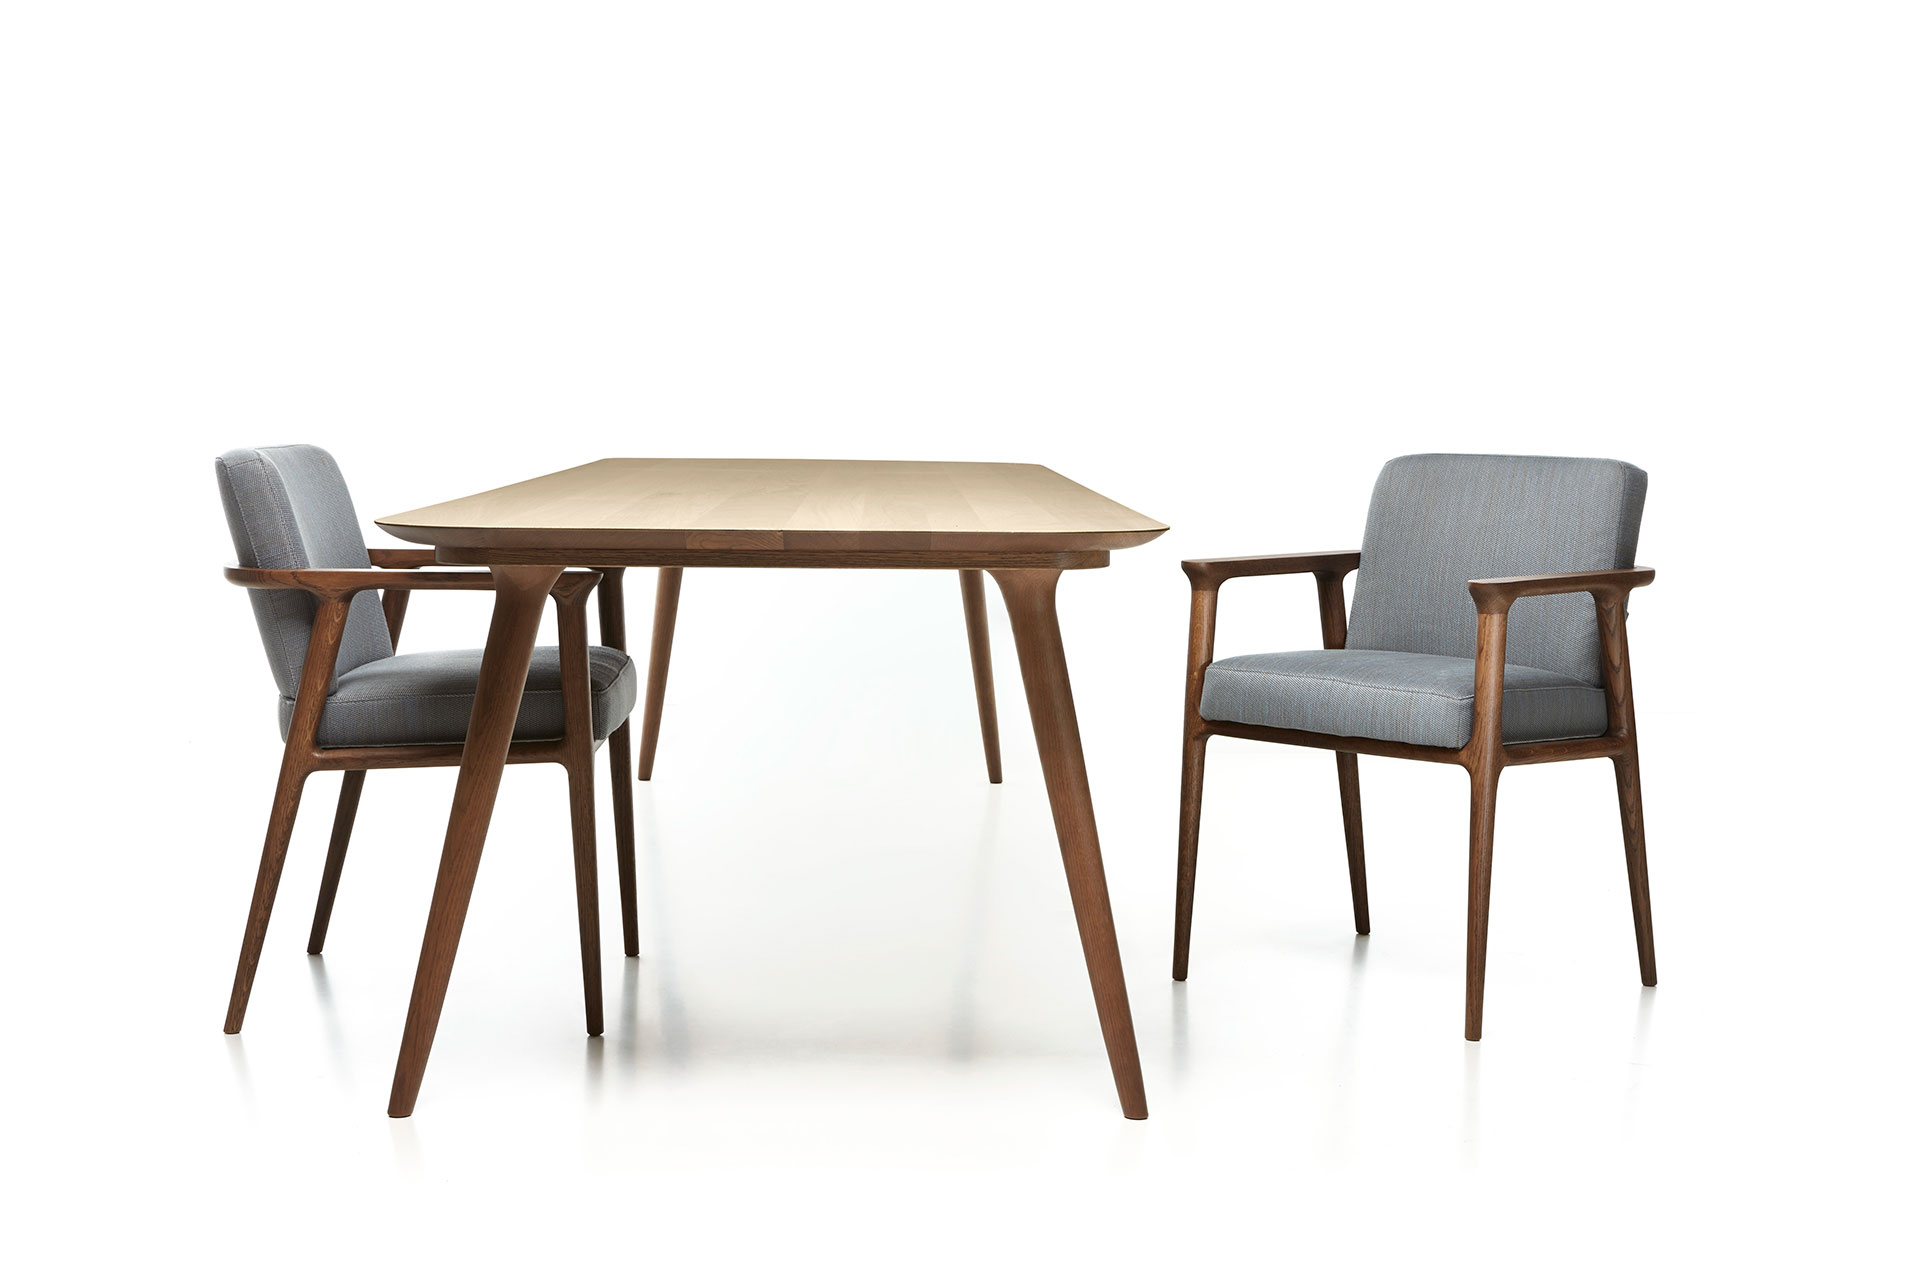 The Moooi Zio dining table and dining chairs.